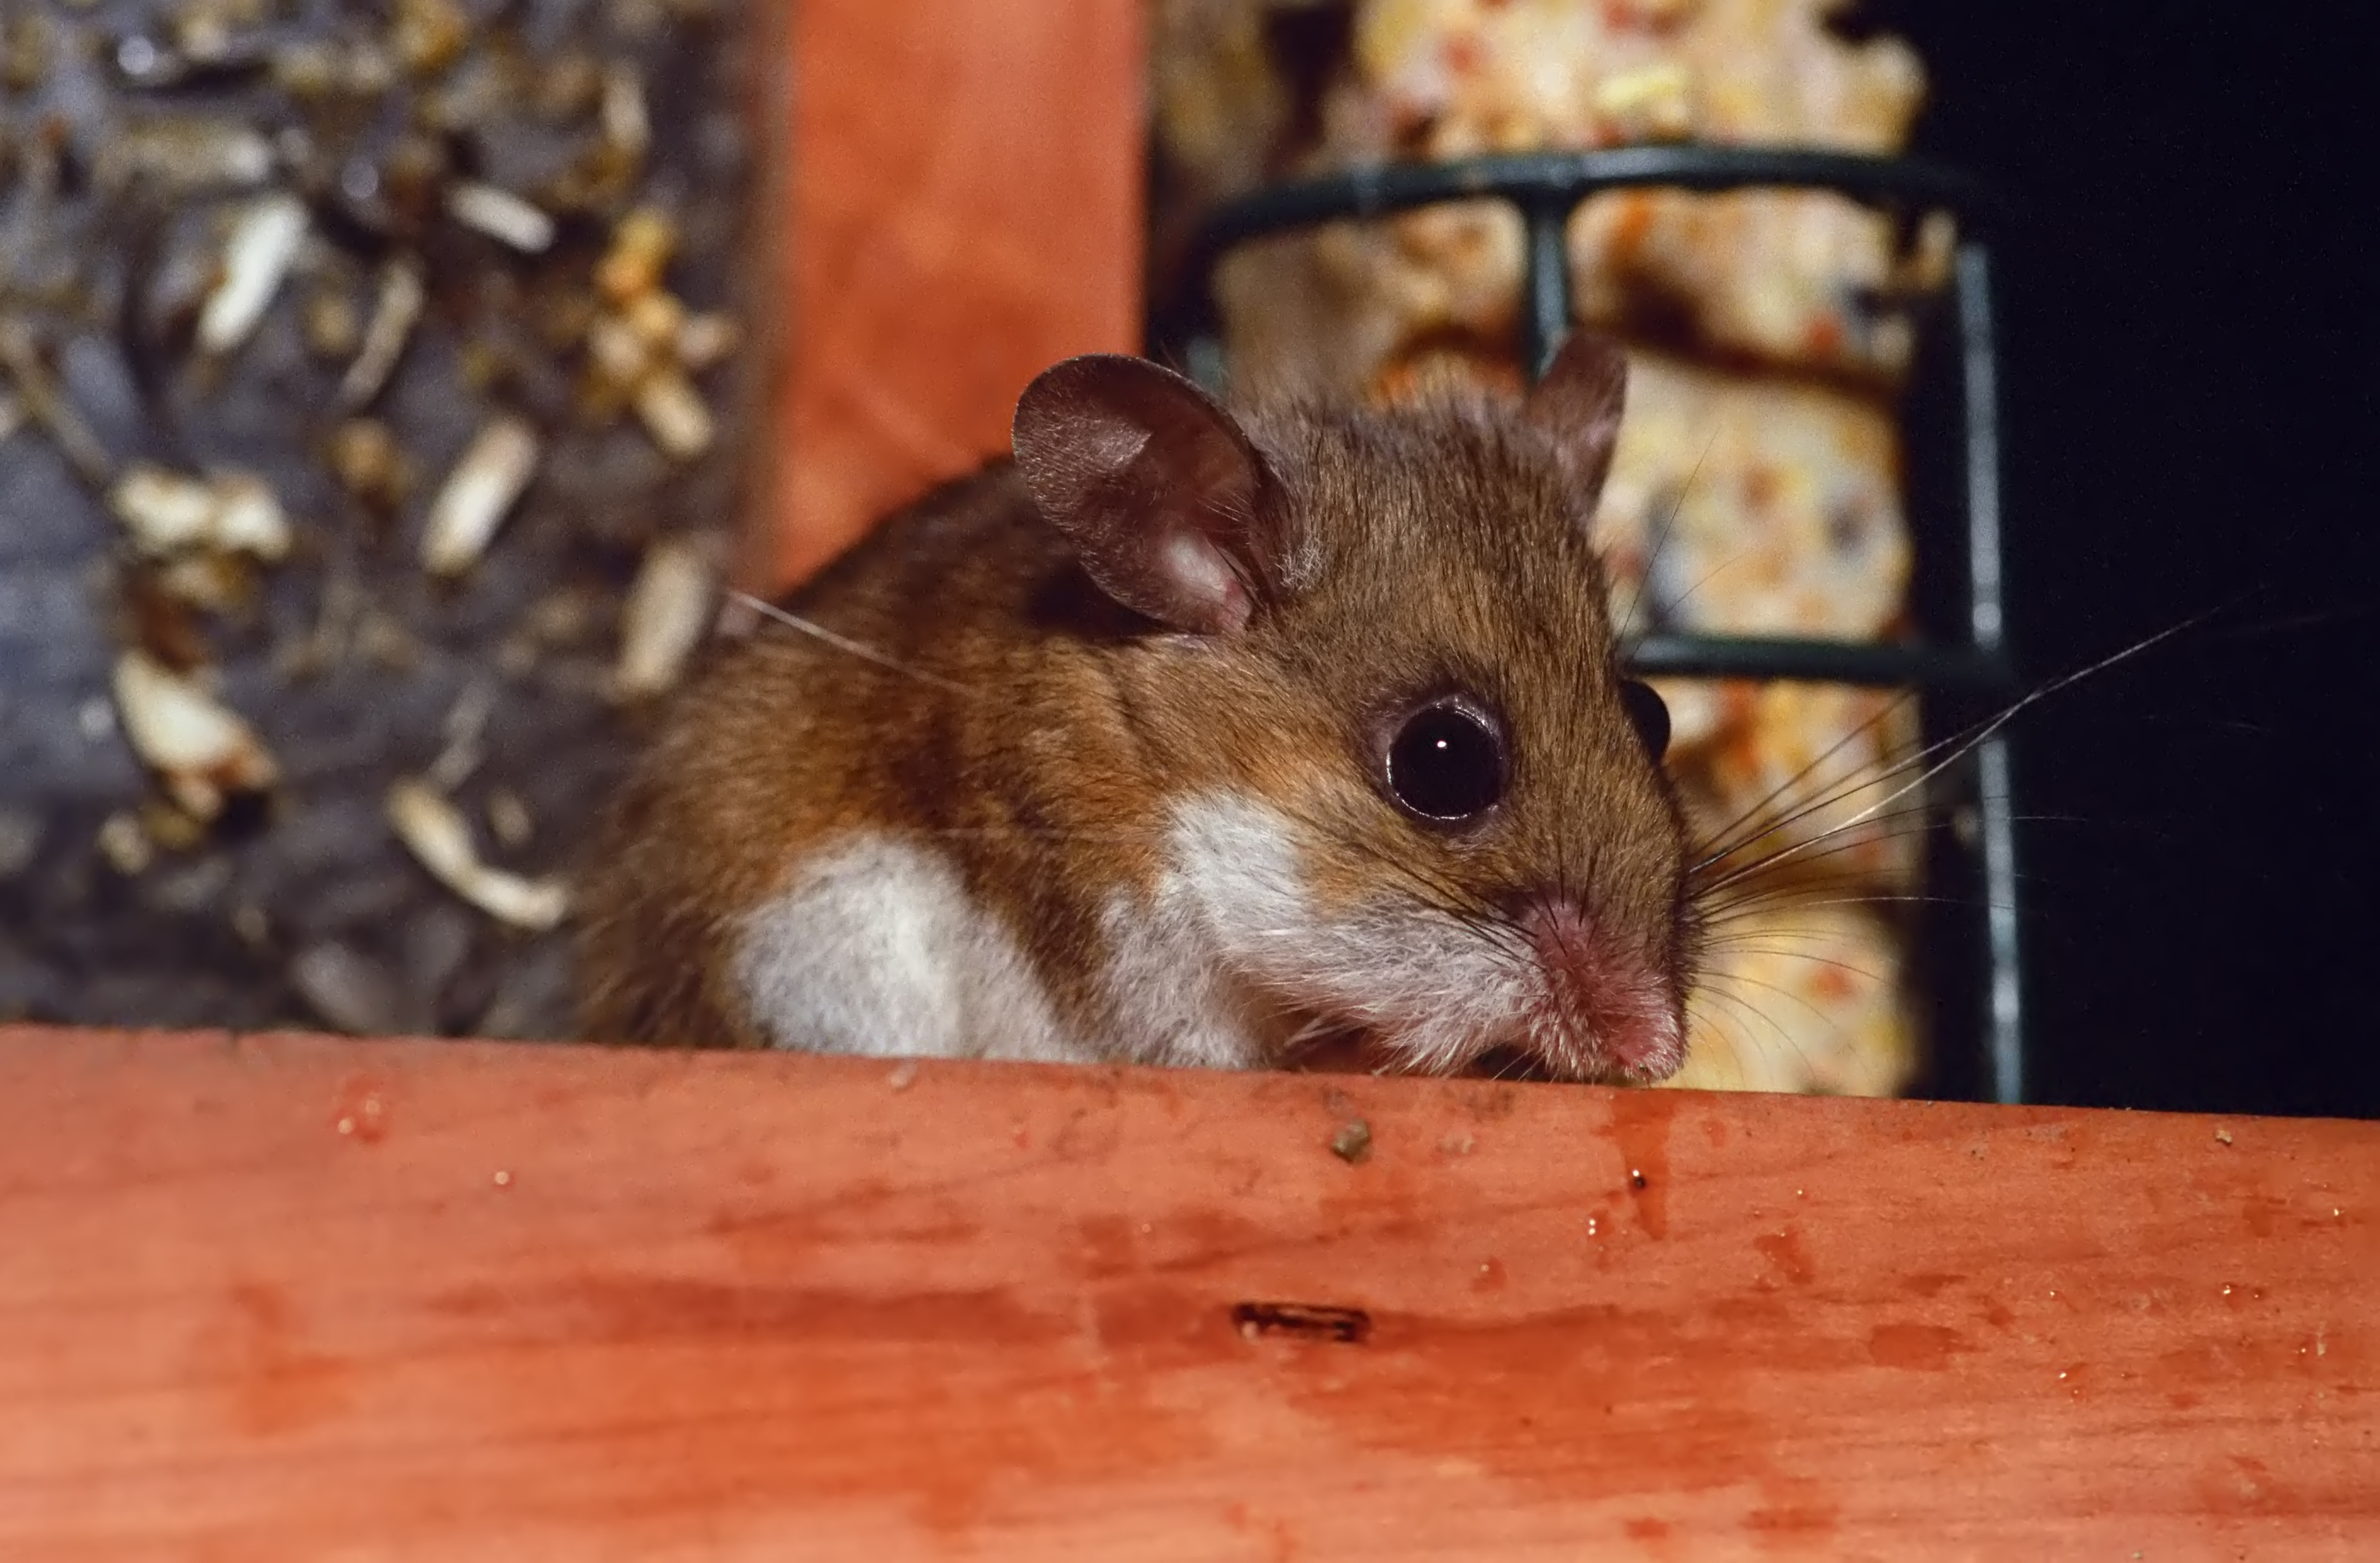 Westlake Legal Group deer_mouse_istock New Mexico woman dies from virus linked to rodent droppings fox-news/us/us-regions/southwest/new-mexico fox-news/health/medical-research/rare-diseases fox-news/health/infectious-disease fox news fnc/health fnc article Alexandria Hein 28276aa1-4ca4-5525-b497-64024b6e637c